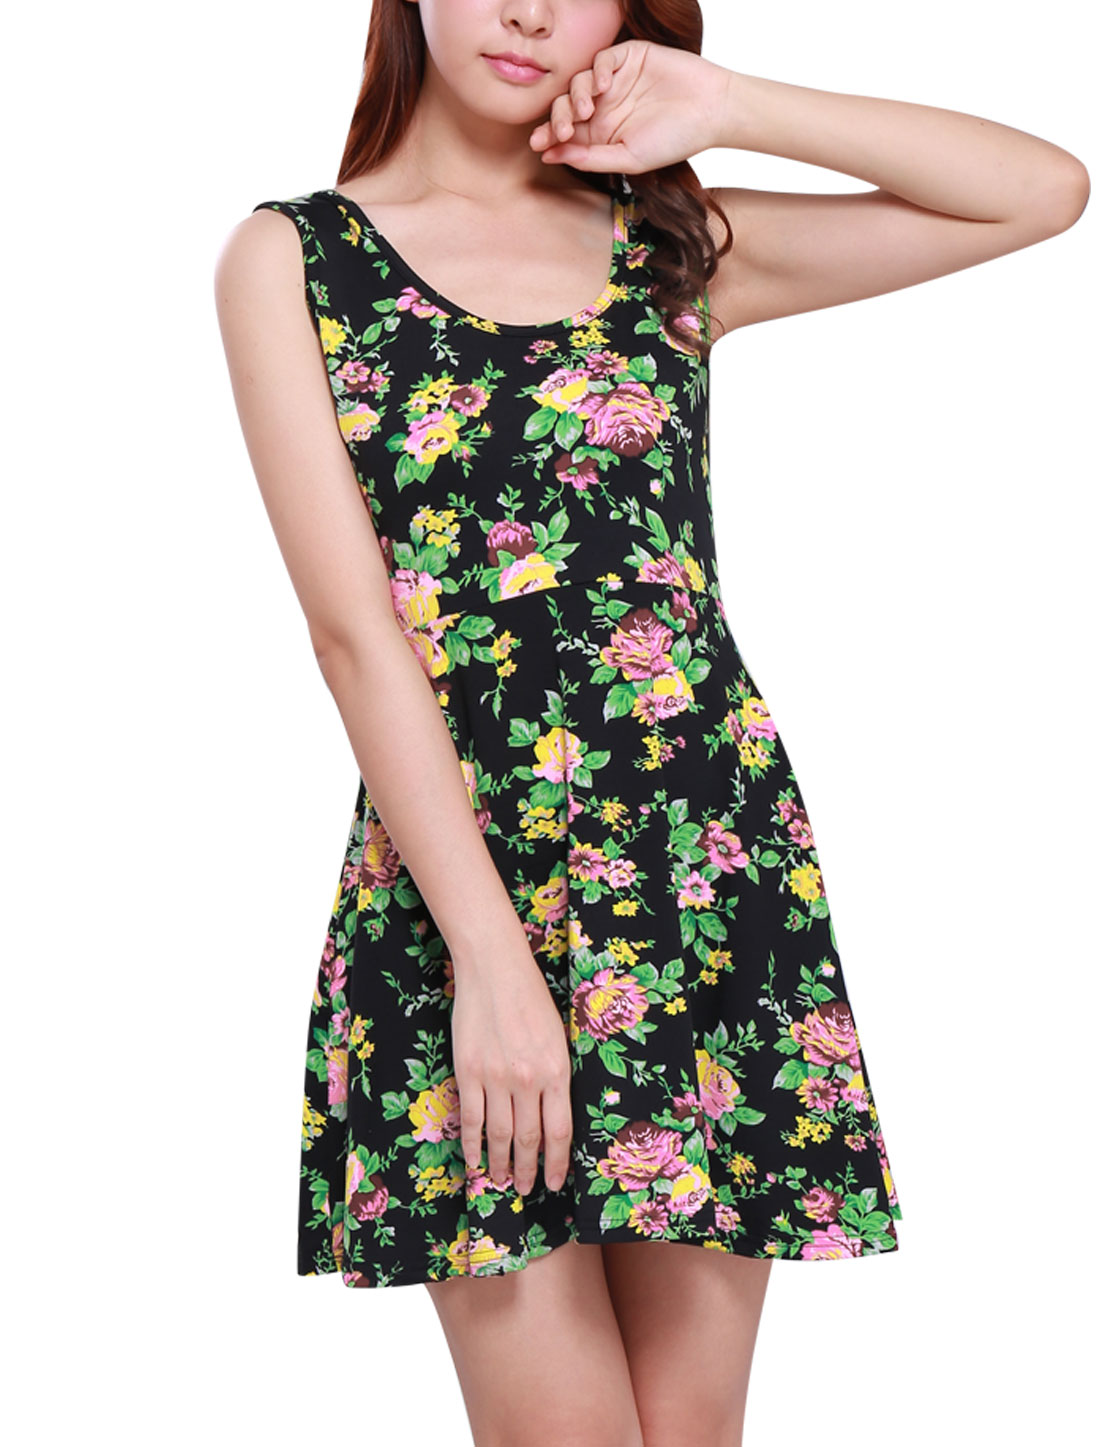 Lady Sleeveless Floral Prints Elastic Skater Dress Black Green M